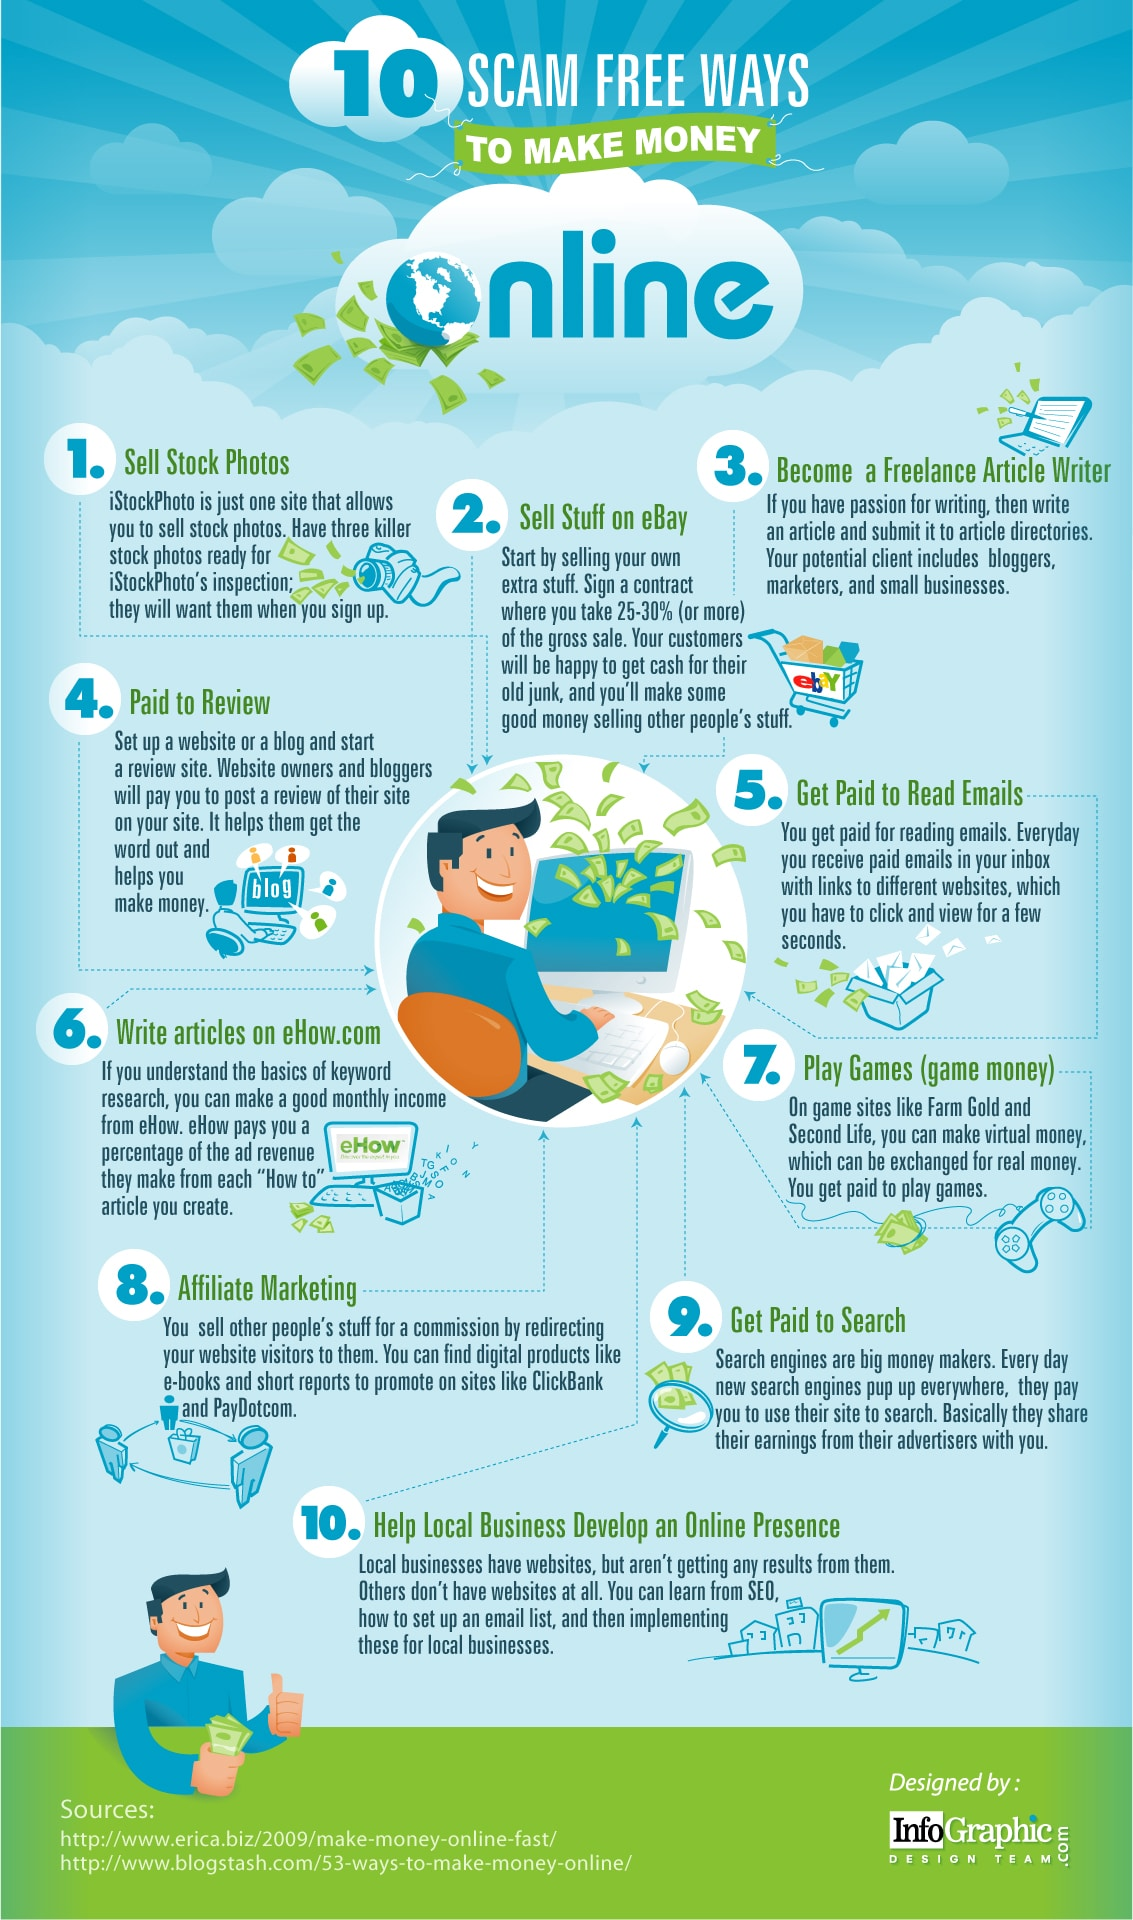 10 Scam Free Ways To Make Money Online [Infographic]